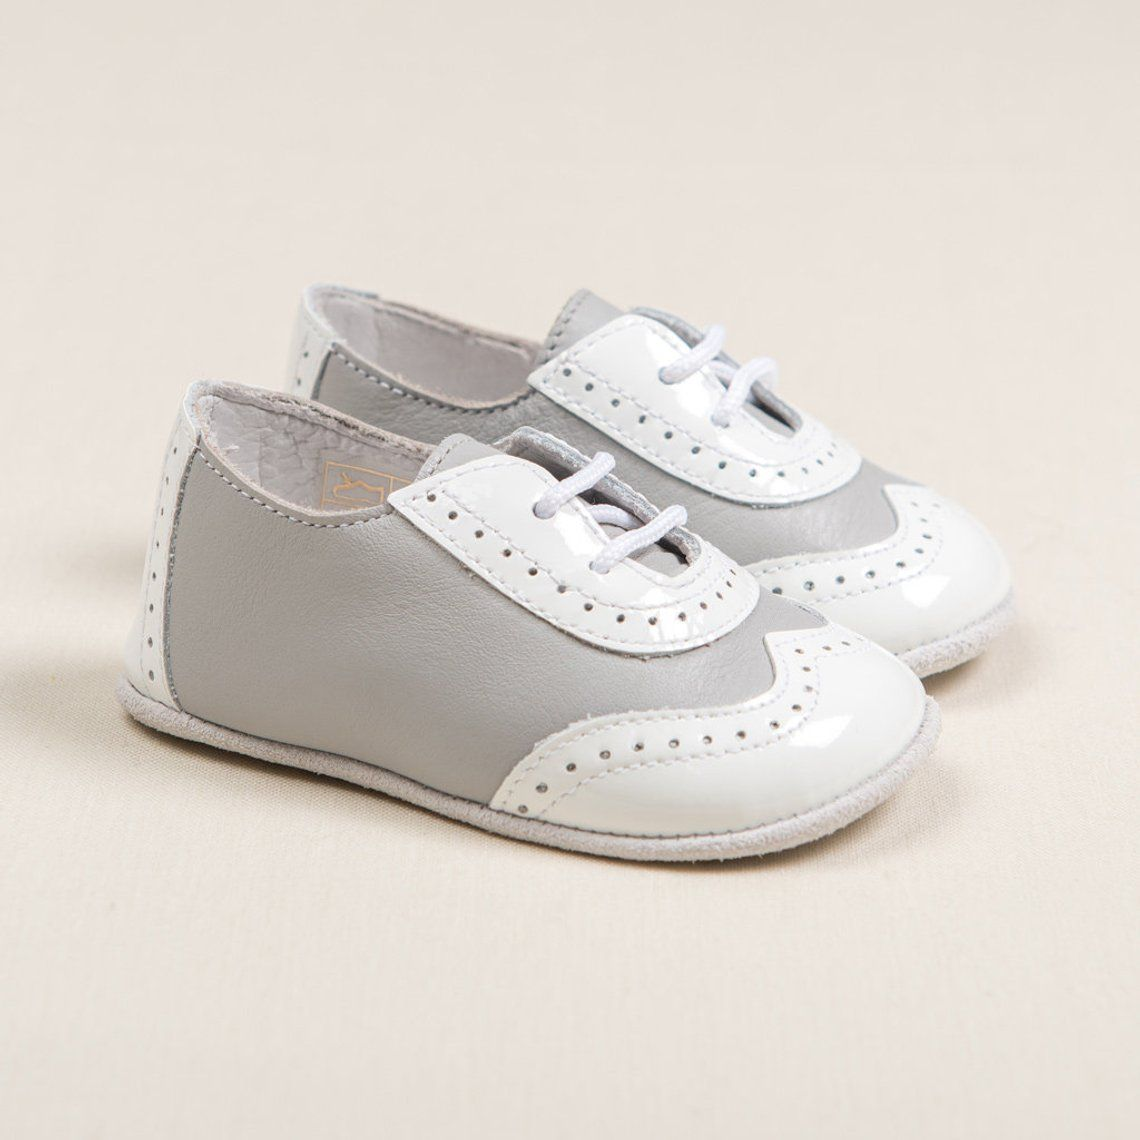 SAMPLE SALE - Baby Boys Leather Wingtip Shoes - Grey ...